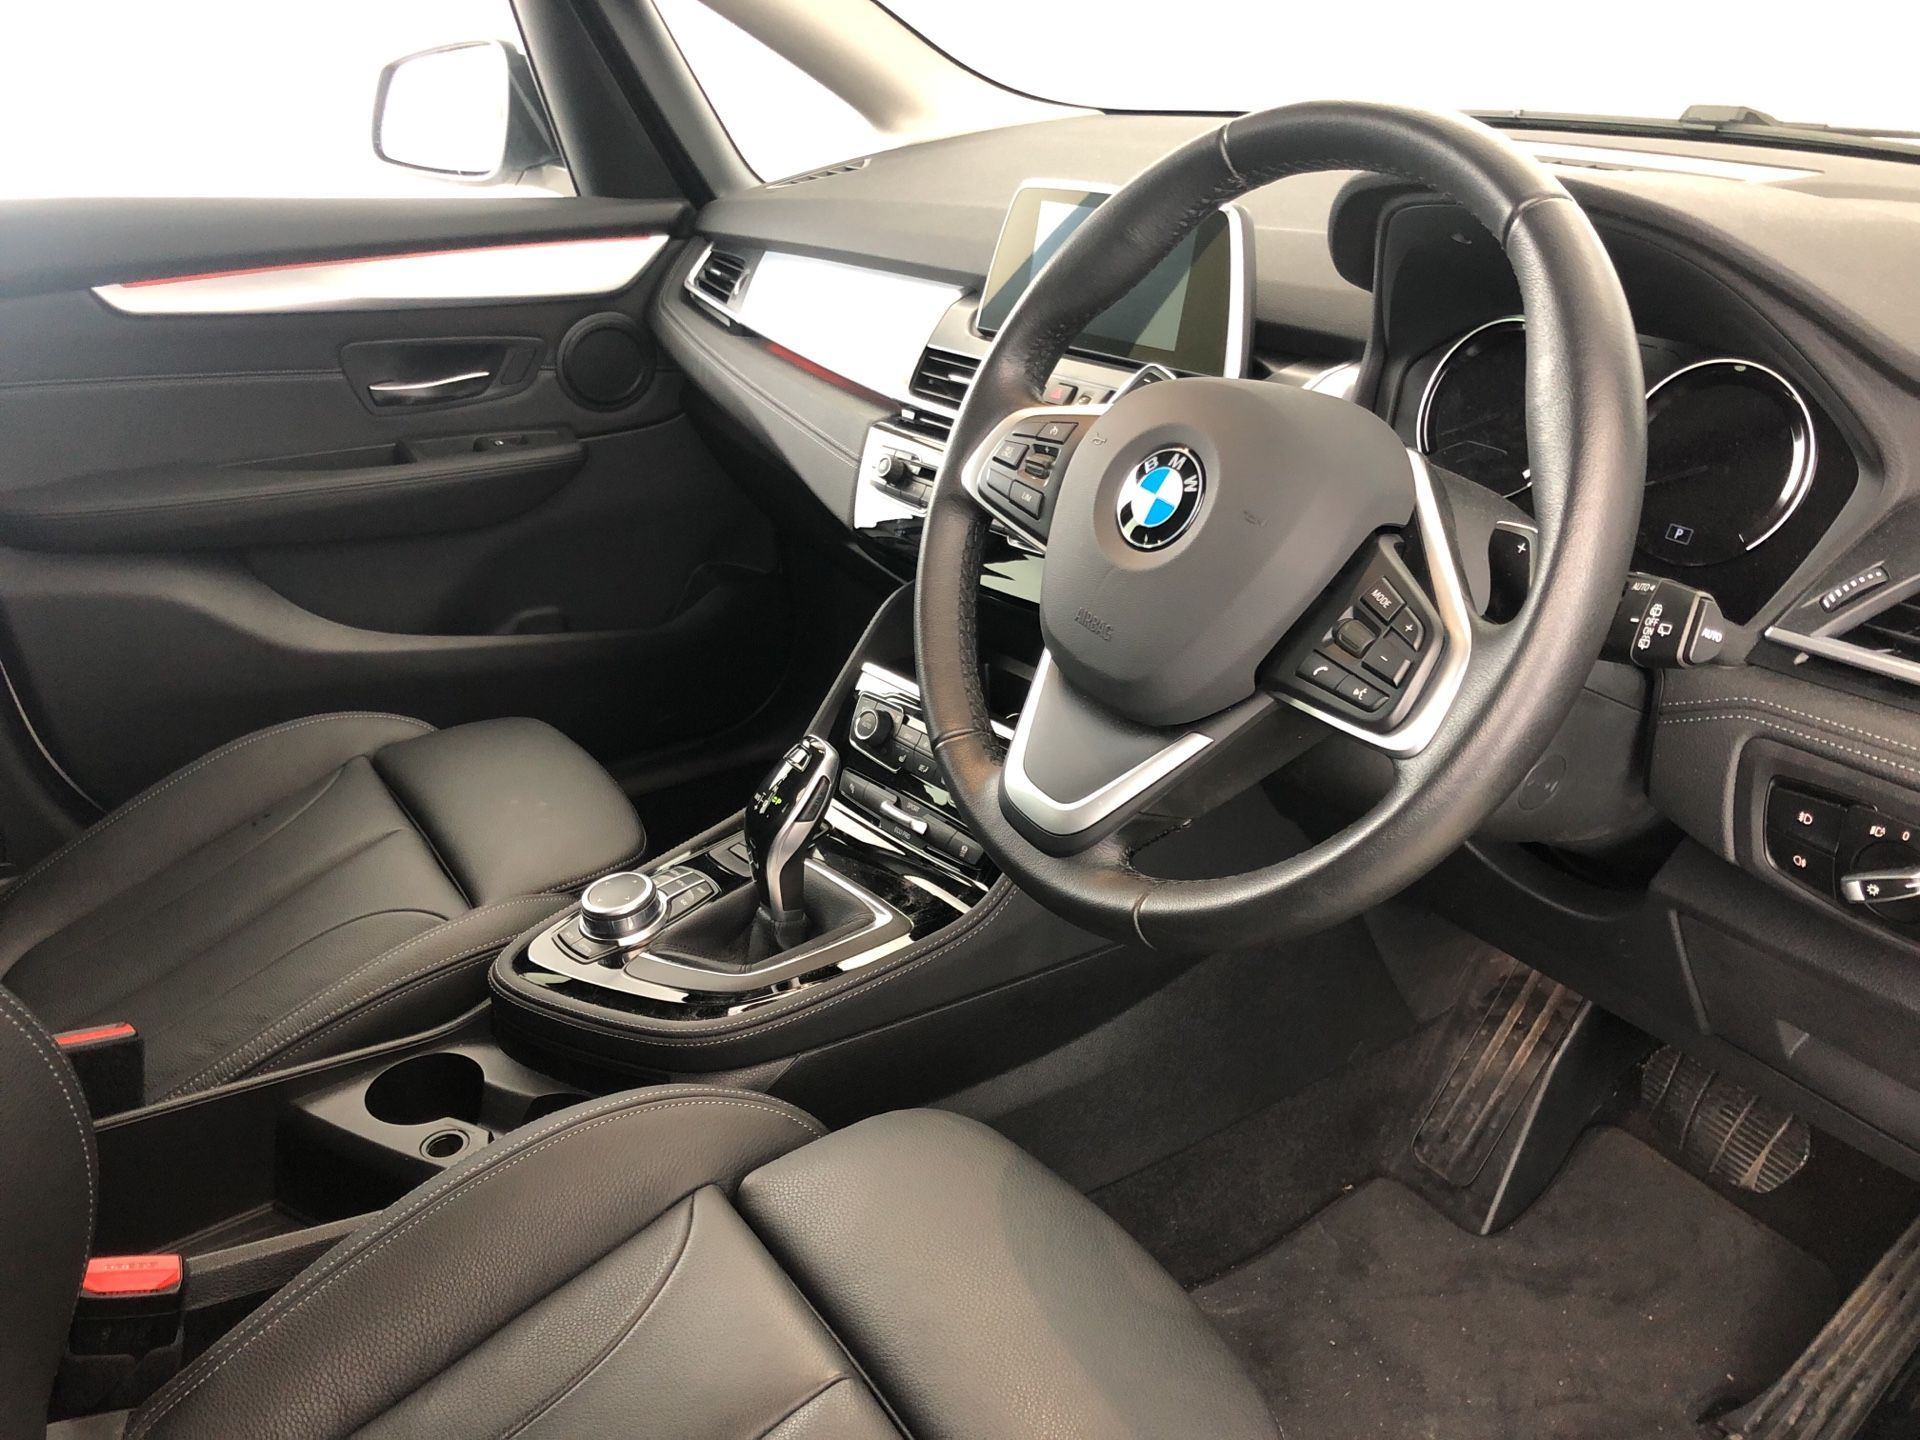 Image 4 - BMW 220d Luxury Active Tourer (YK68DJO)